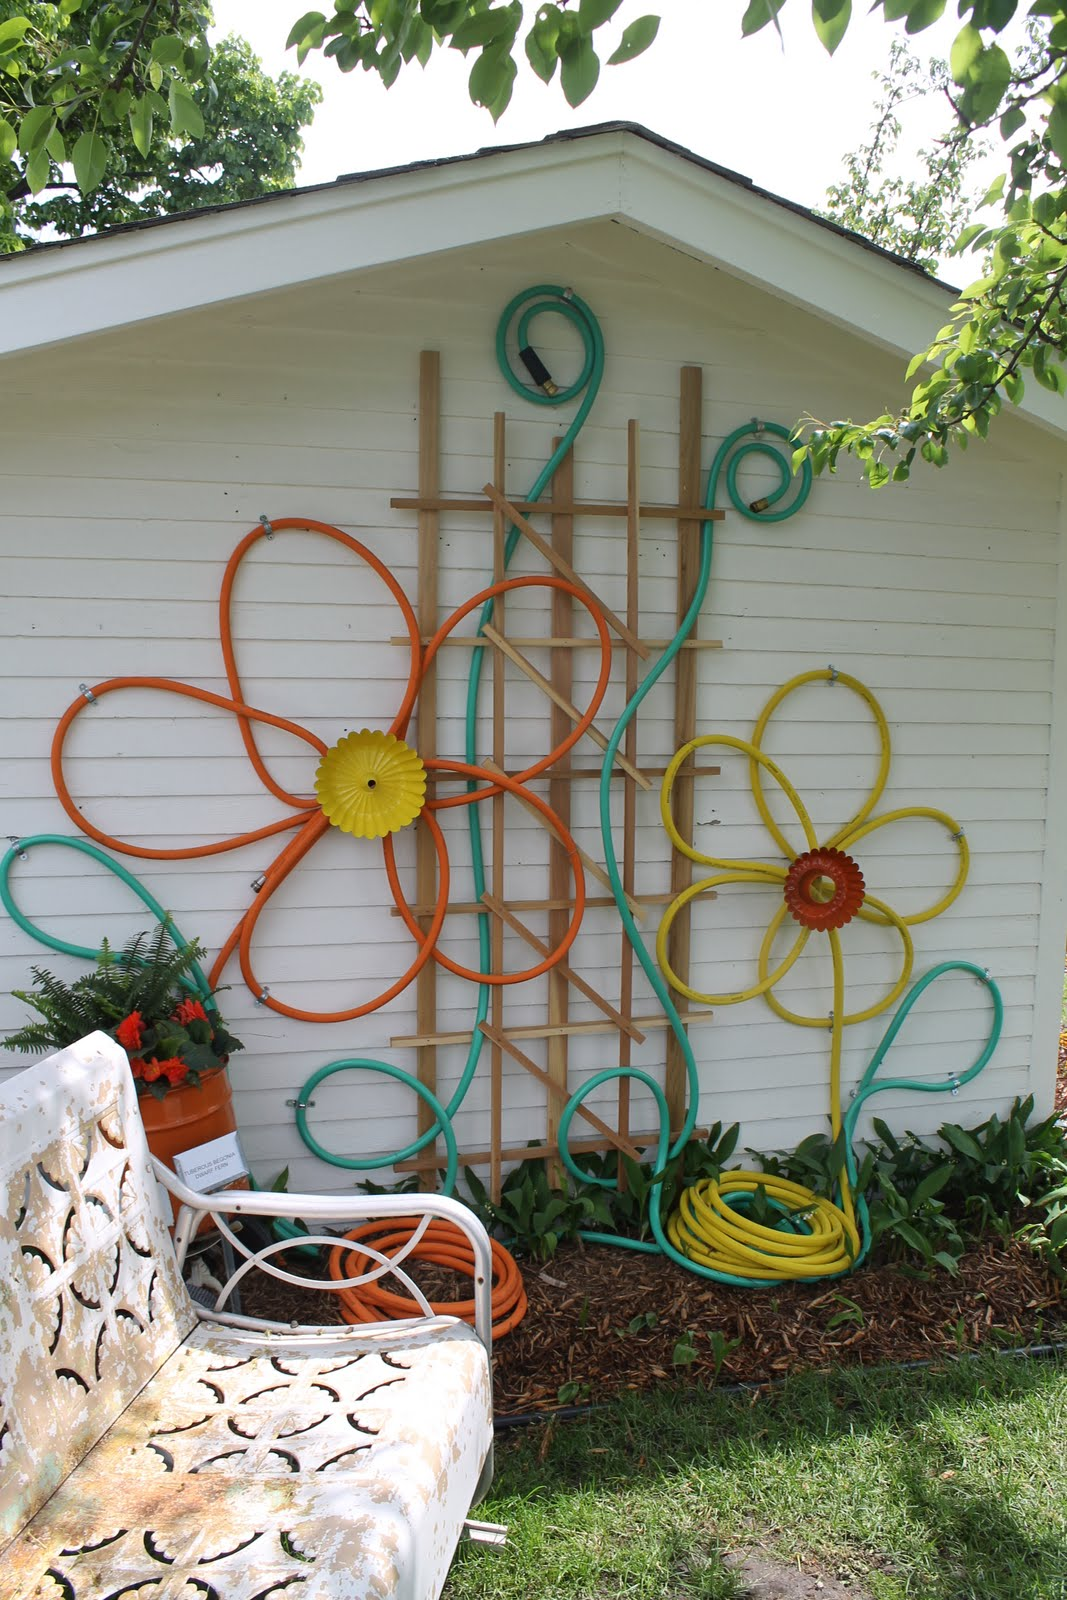 How to beautify your house outdoor wall dcor ideas make flowers from hoses for outdoor house decor solutioingenieria Images